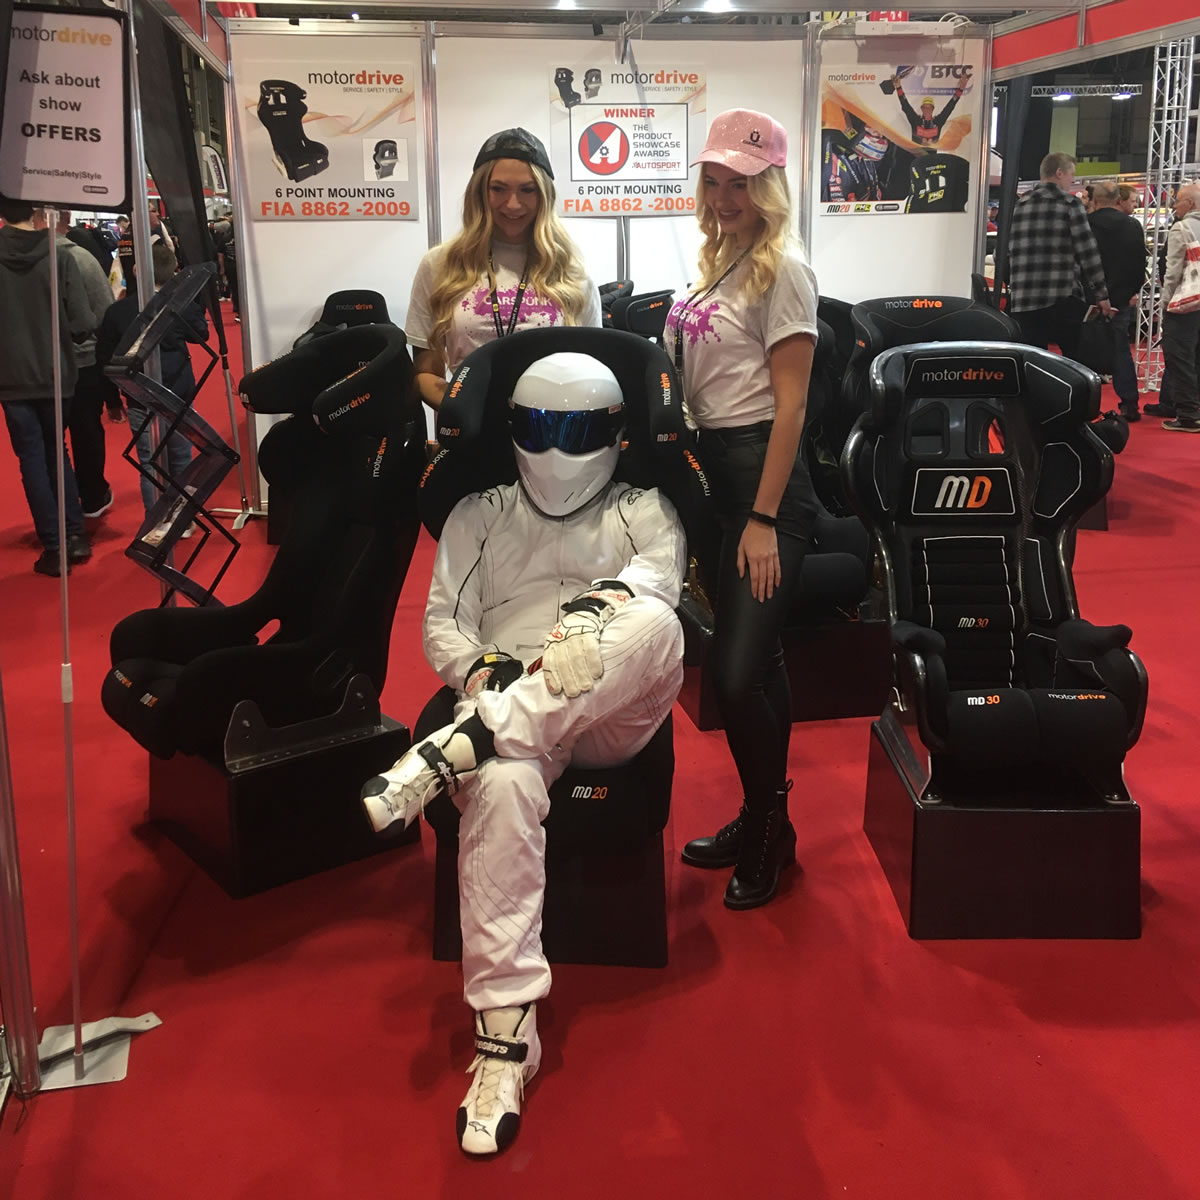 The Stig making himself comfortable in a Motordrive Seat